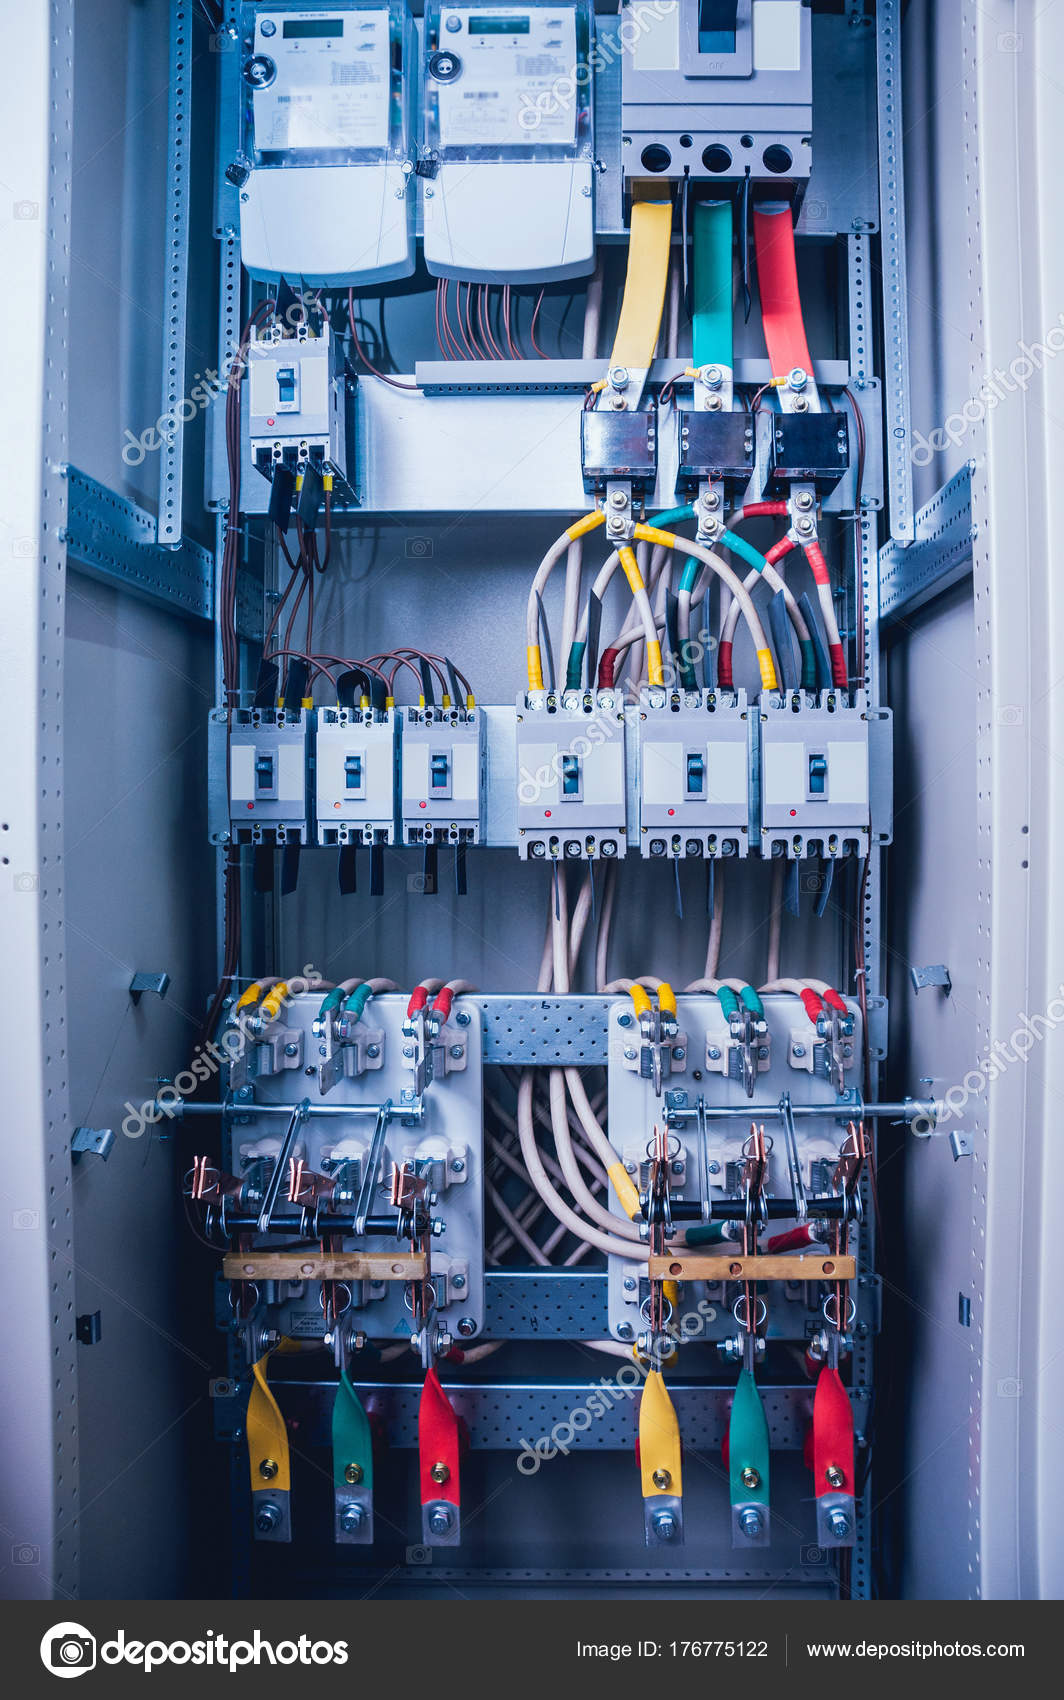 electric box fuses 1 wiring diagram sourcewires switches electric box electrical panel fuses contactorswires switches electric box electrical panel fuses contactors \\